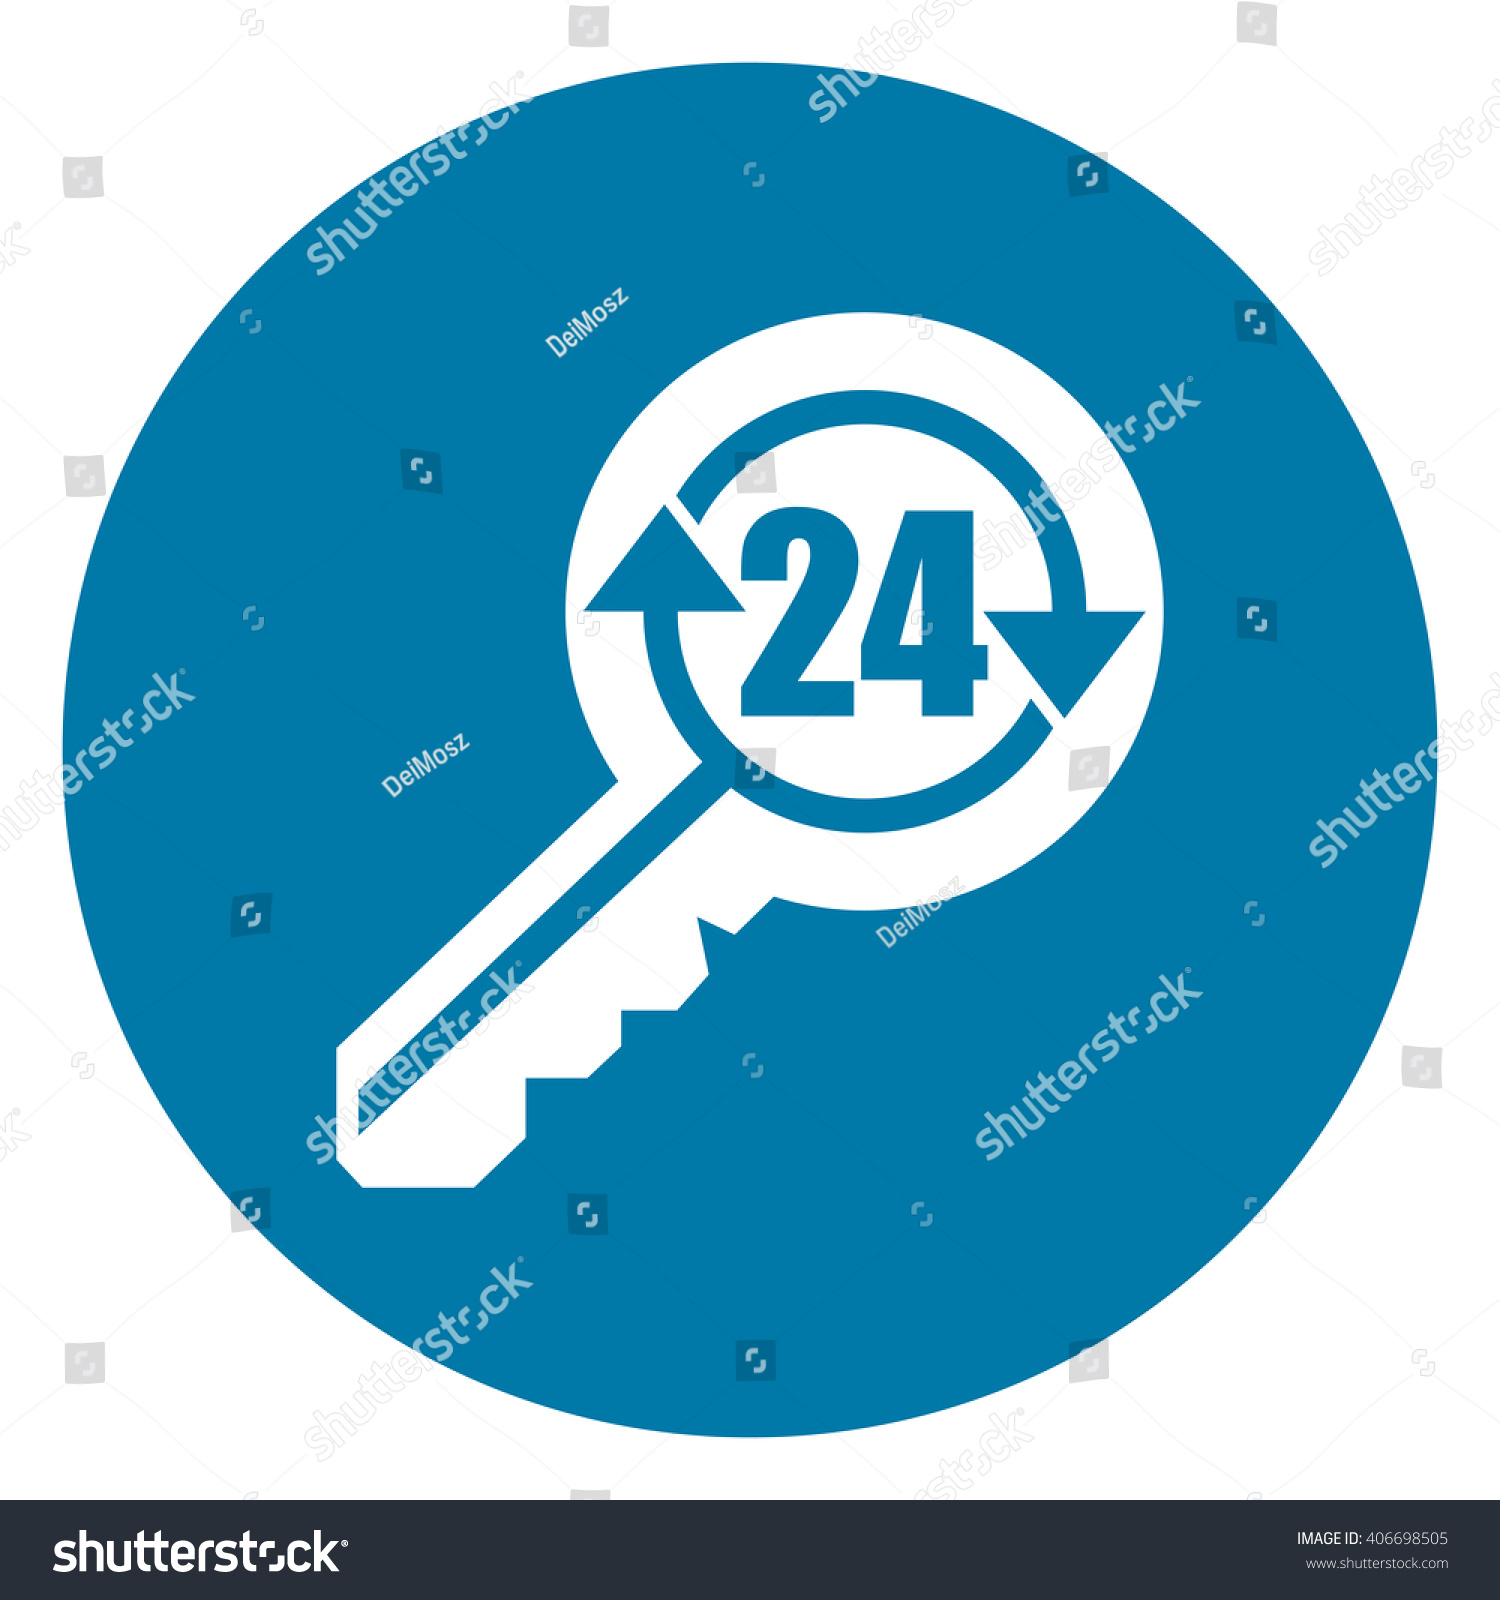 stock-photo-blue-circle-hour-locksmith-k